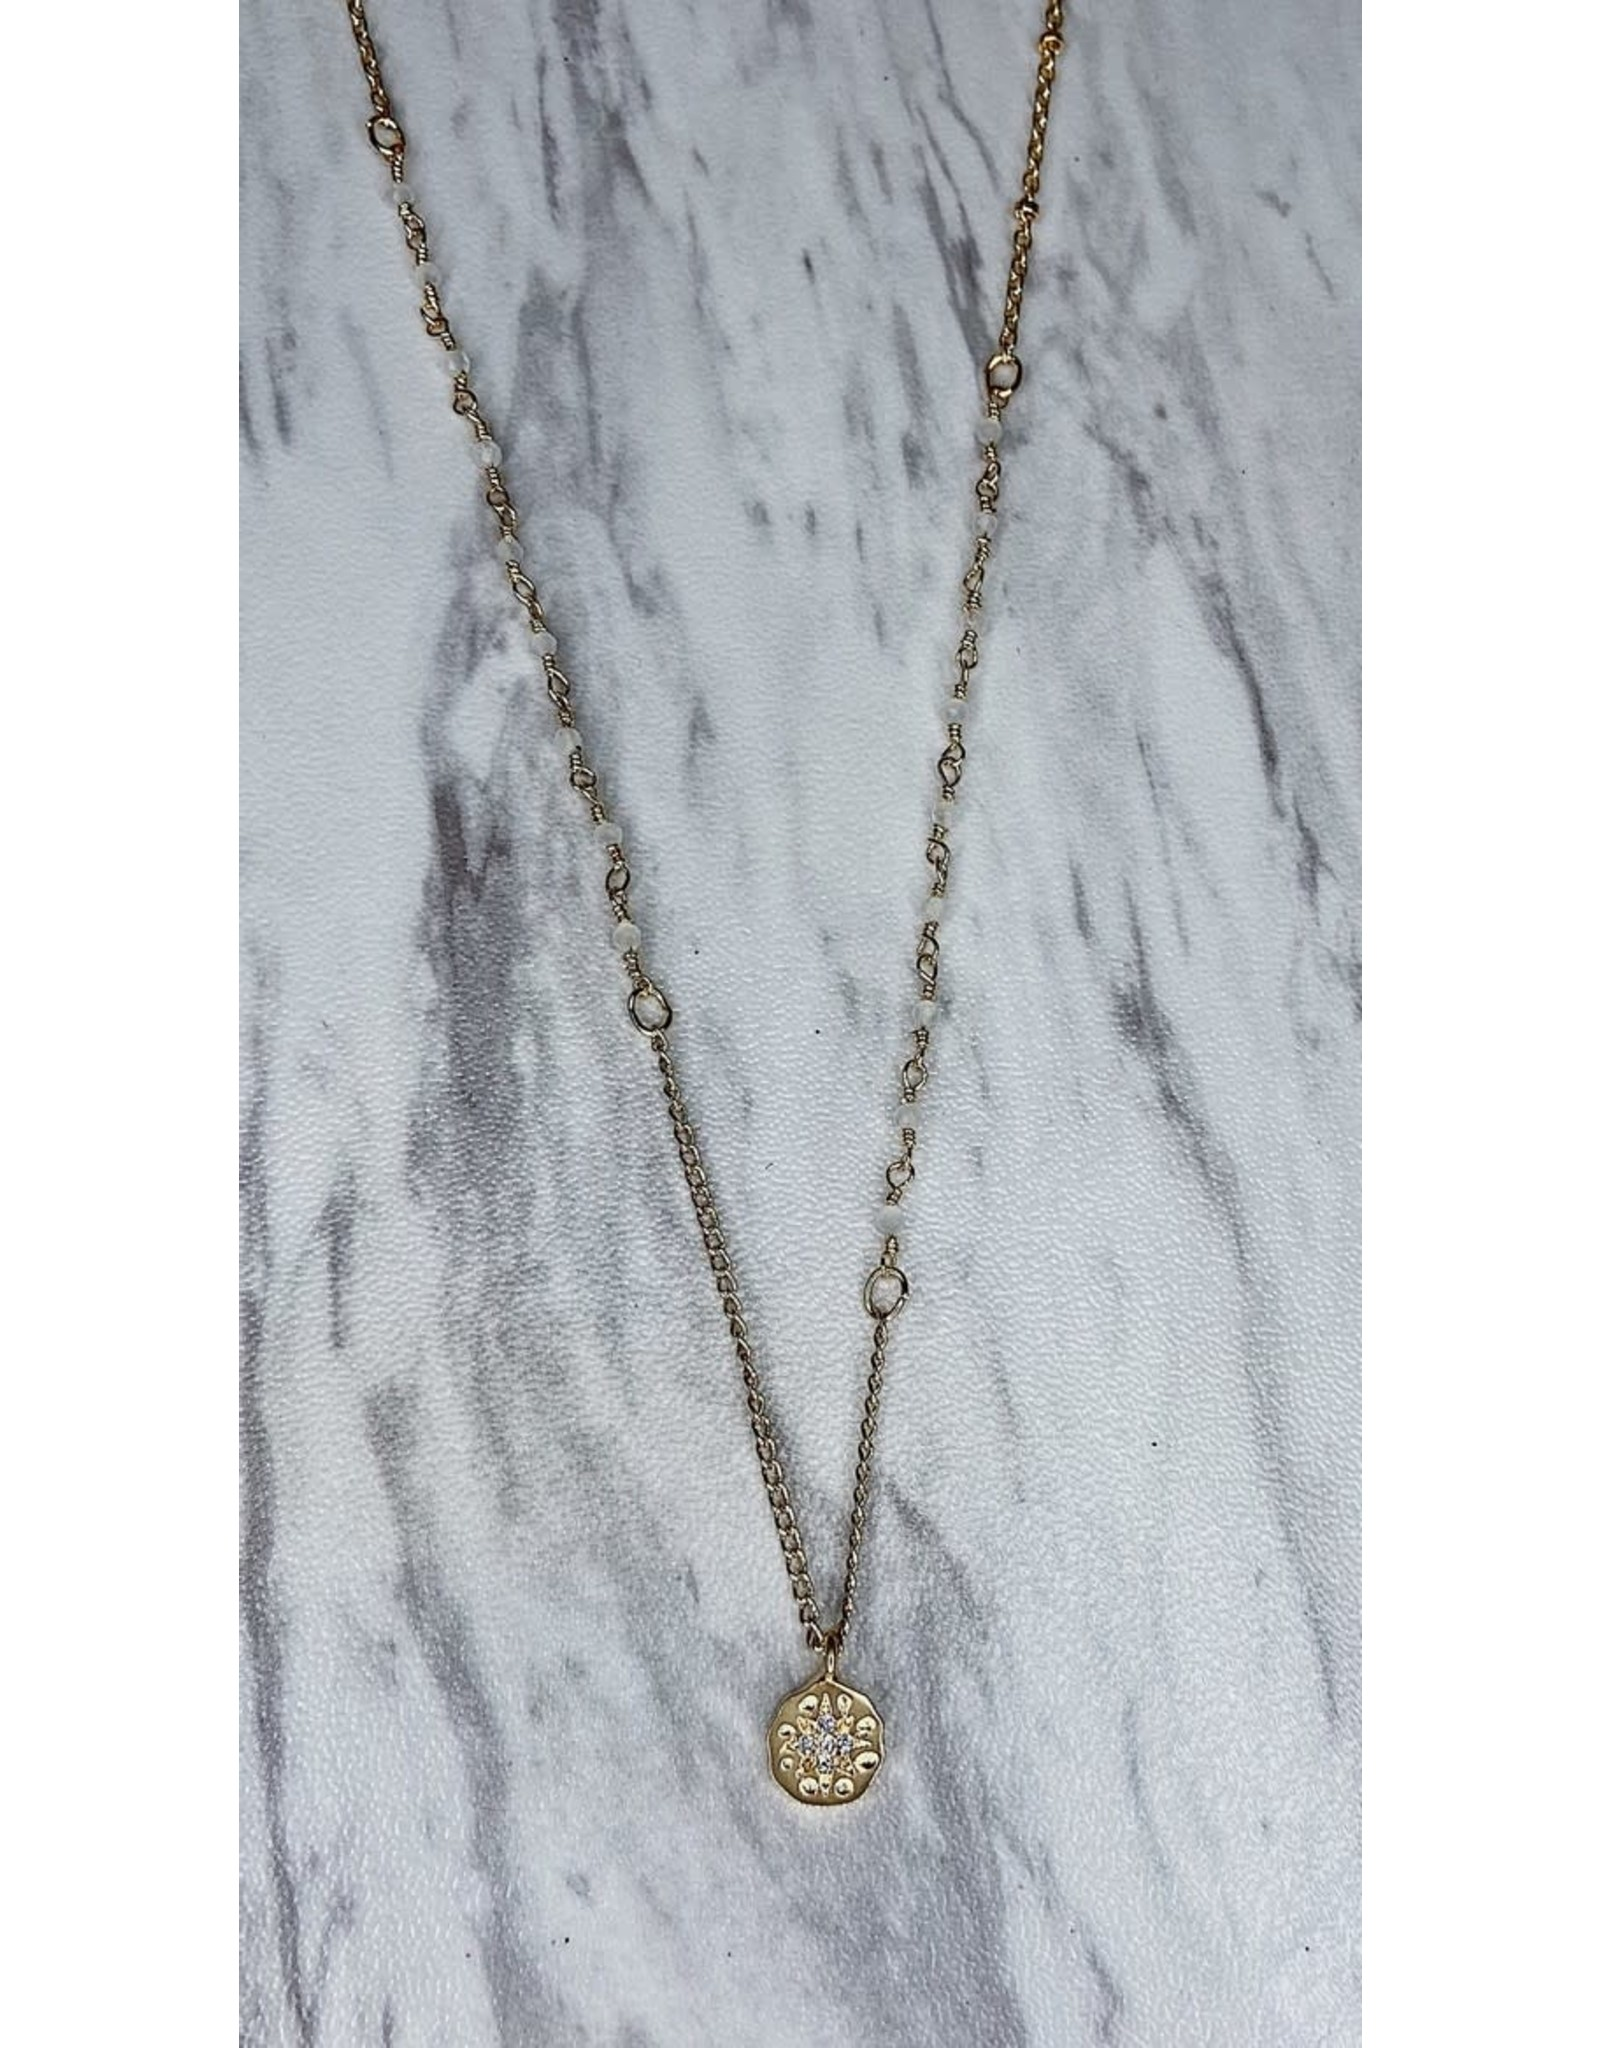 HADES PEARL DETAIL NECKLACE